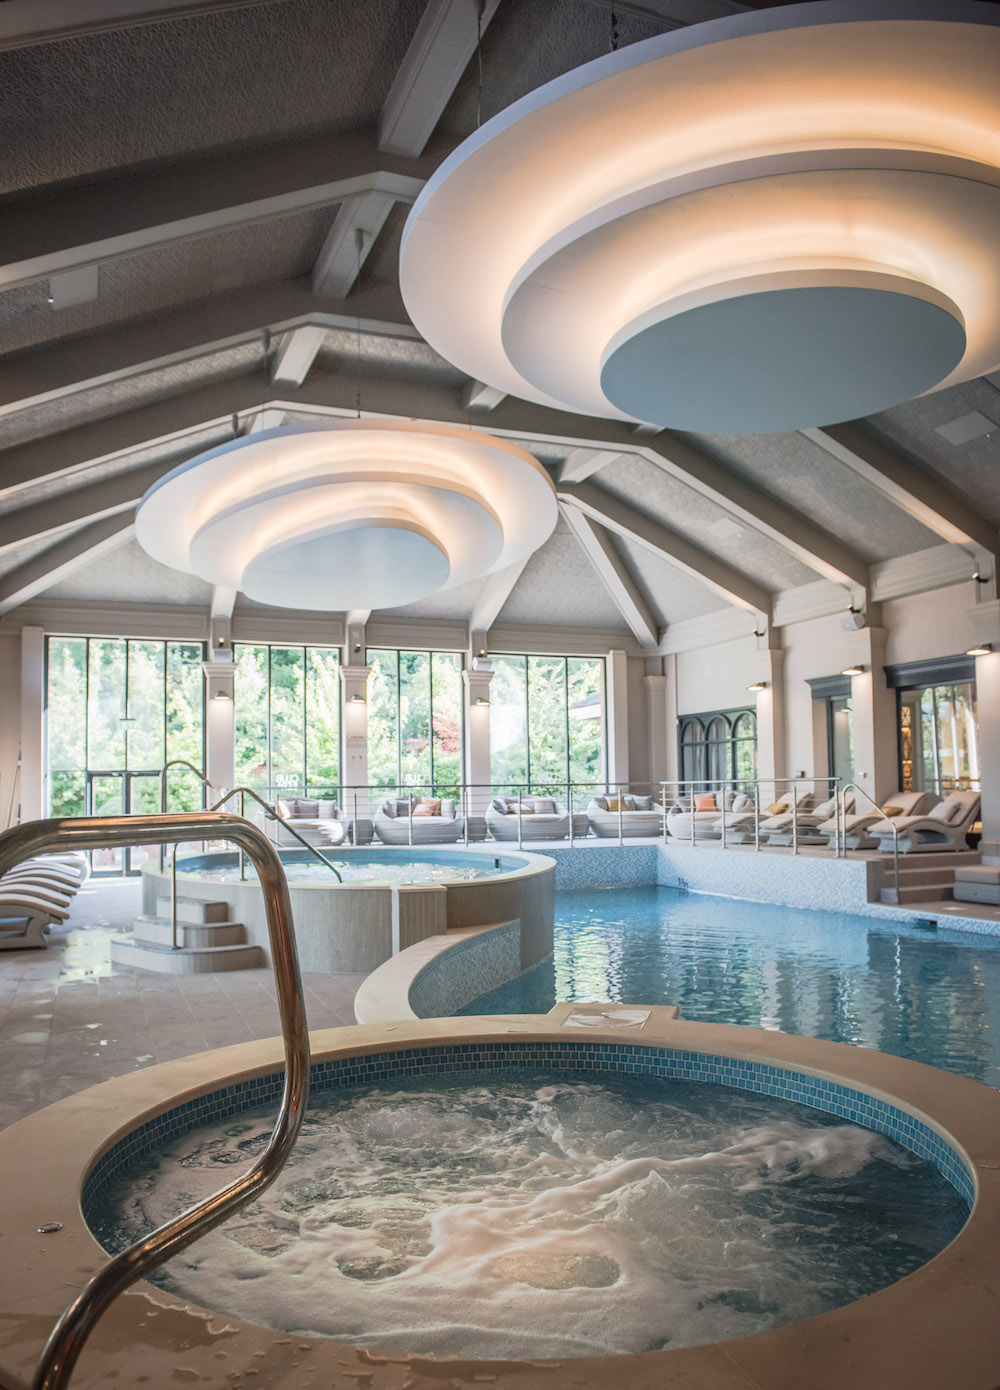 Image of Jacuzzi and pool inside Mottram Hall